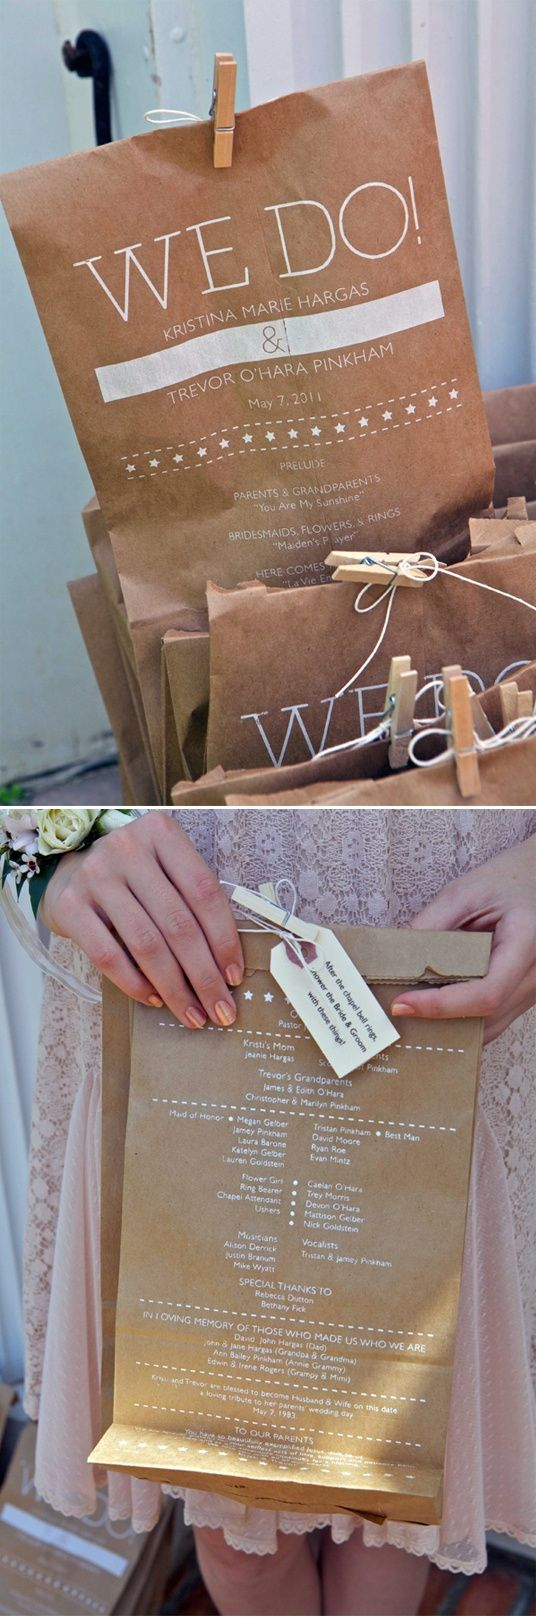 Such a cute, fun and fabulous idea!  Have your wedding ceremony printed on a brown paper bag and then fill with confetti or rose petals for your guests to throw after the ceremony.